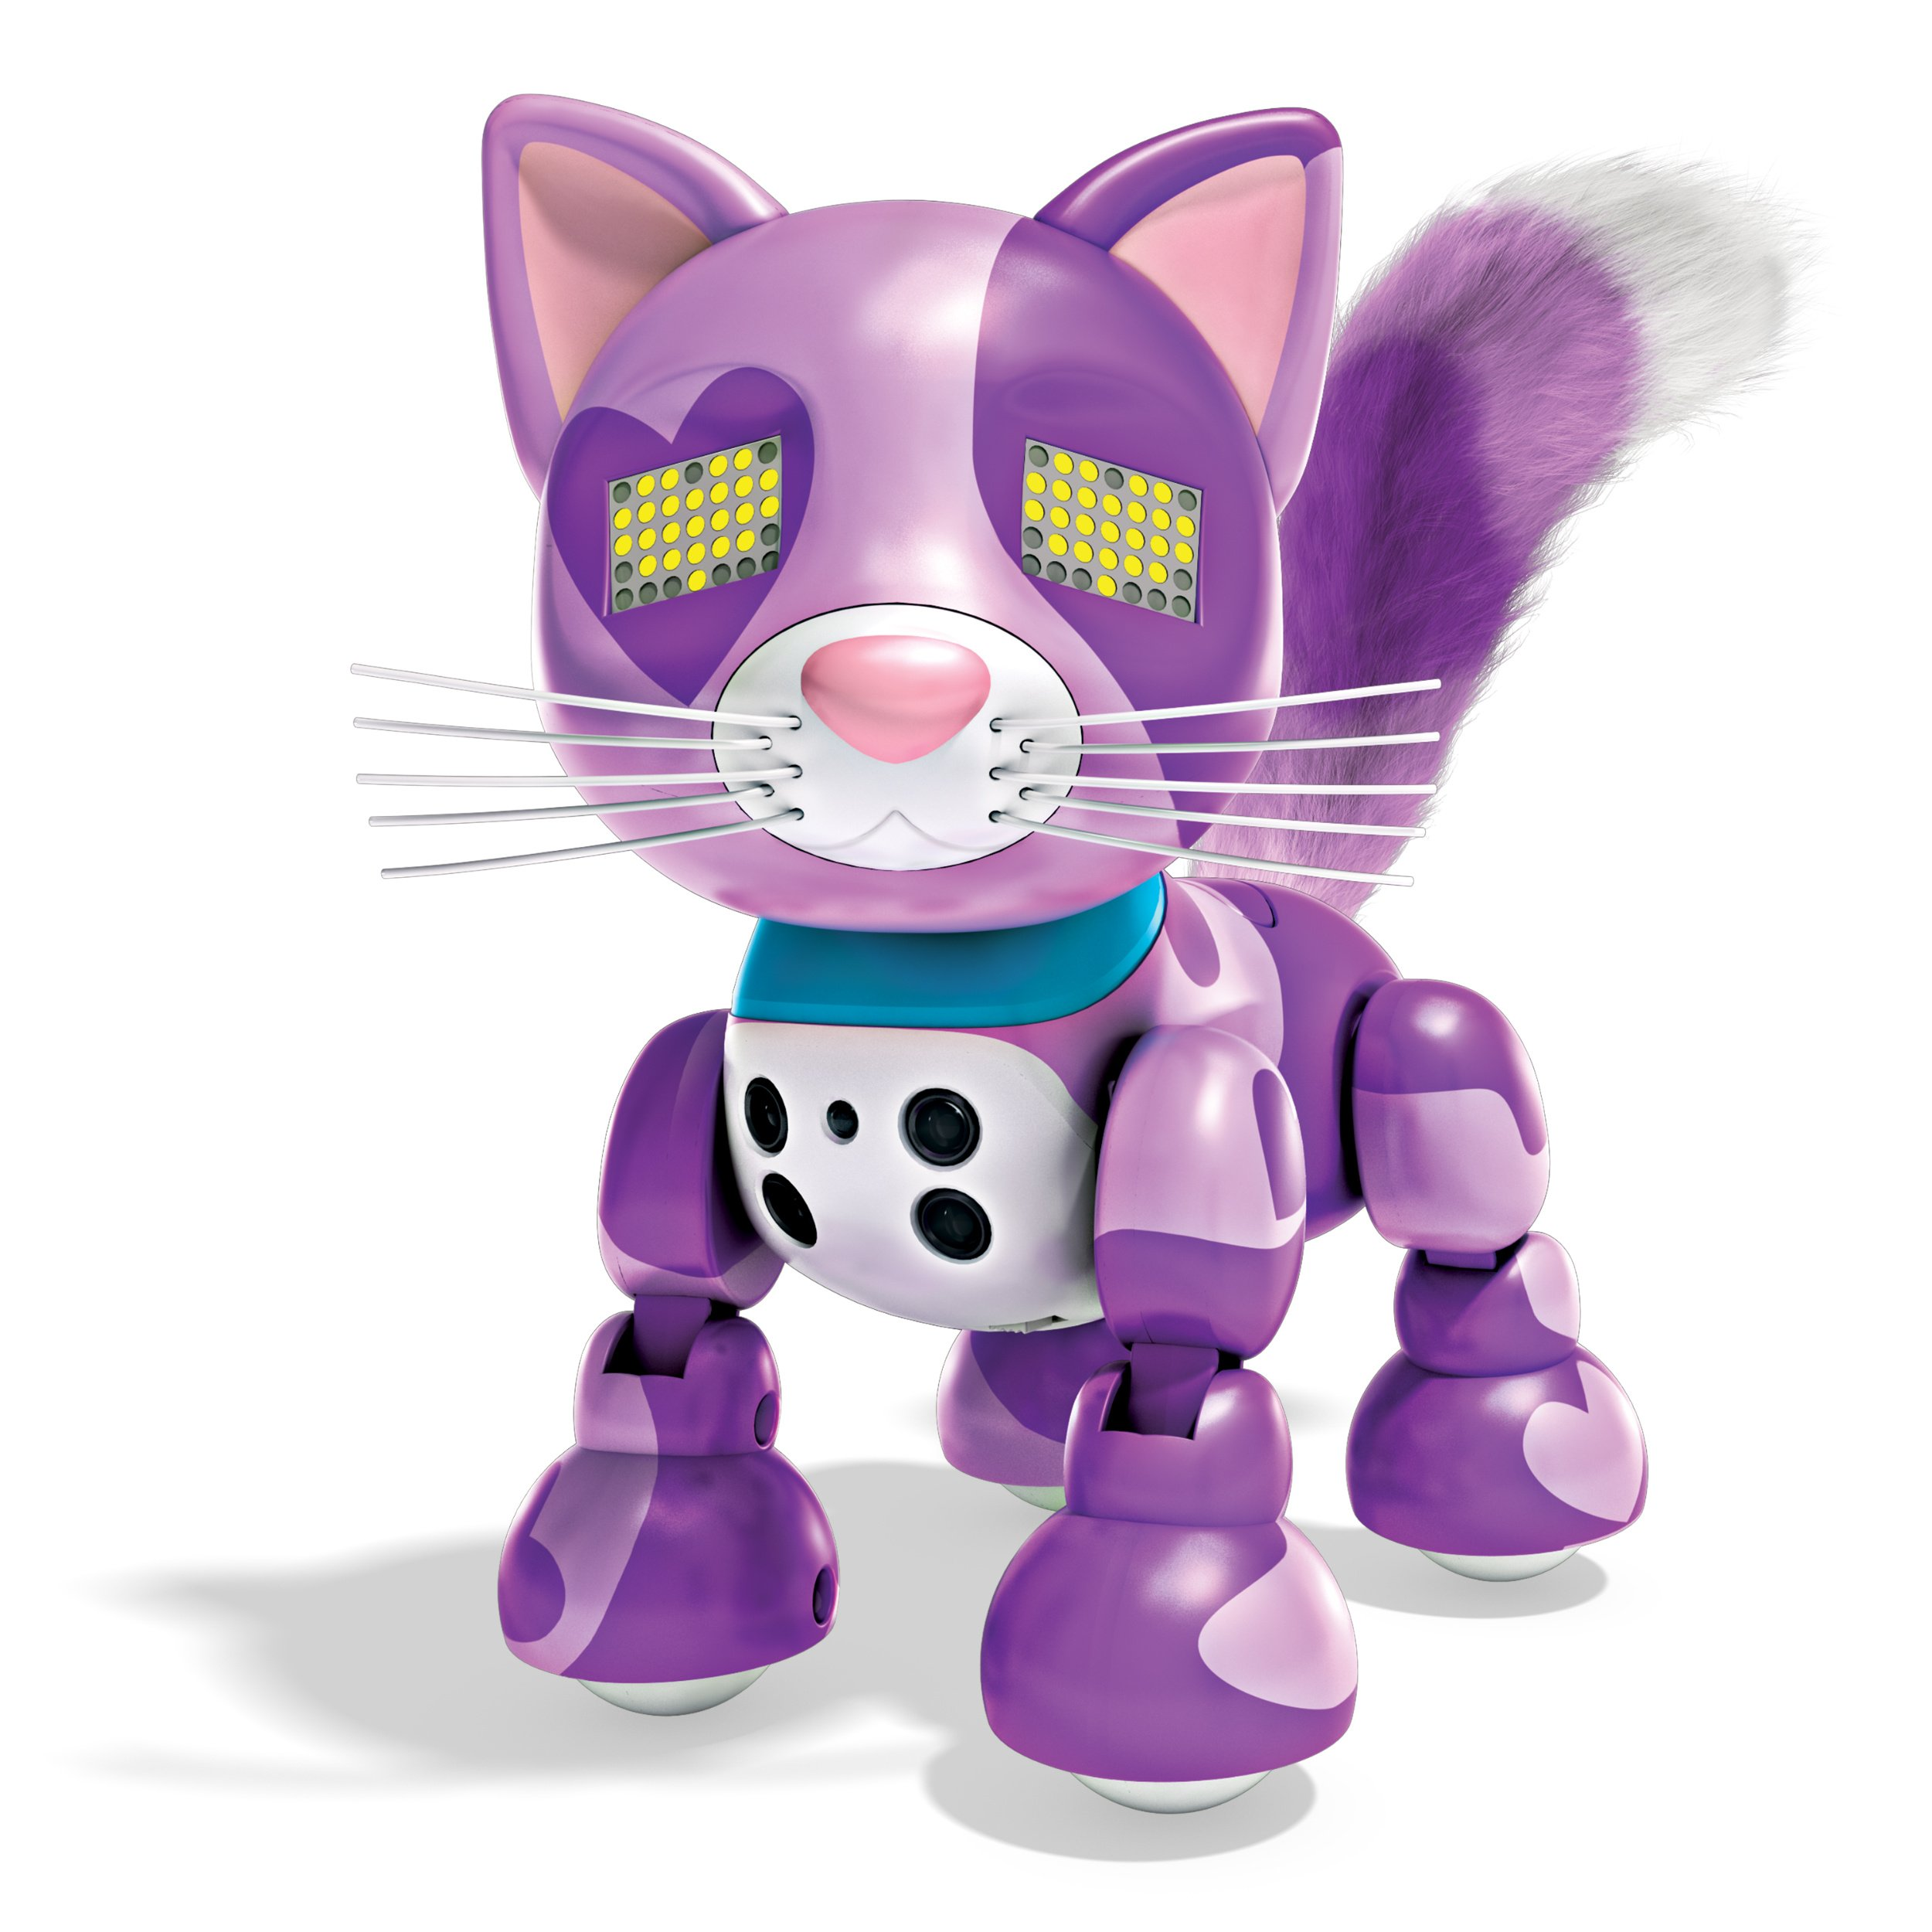 Zoomer Meowzies, Viola, Interactive Kitten with Lights, Sounds and Sensors, by Spin Master by Zoomer (Image #3)